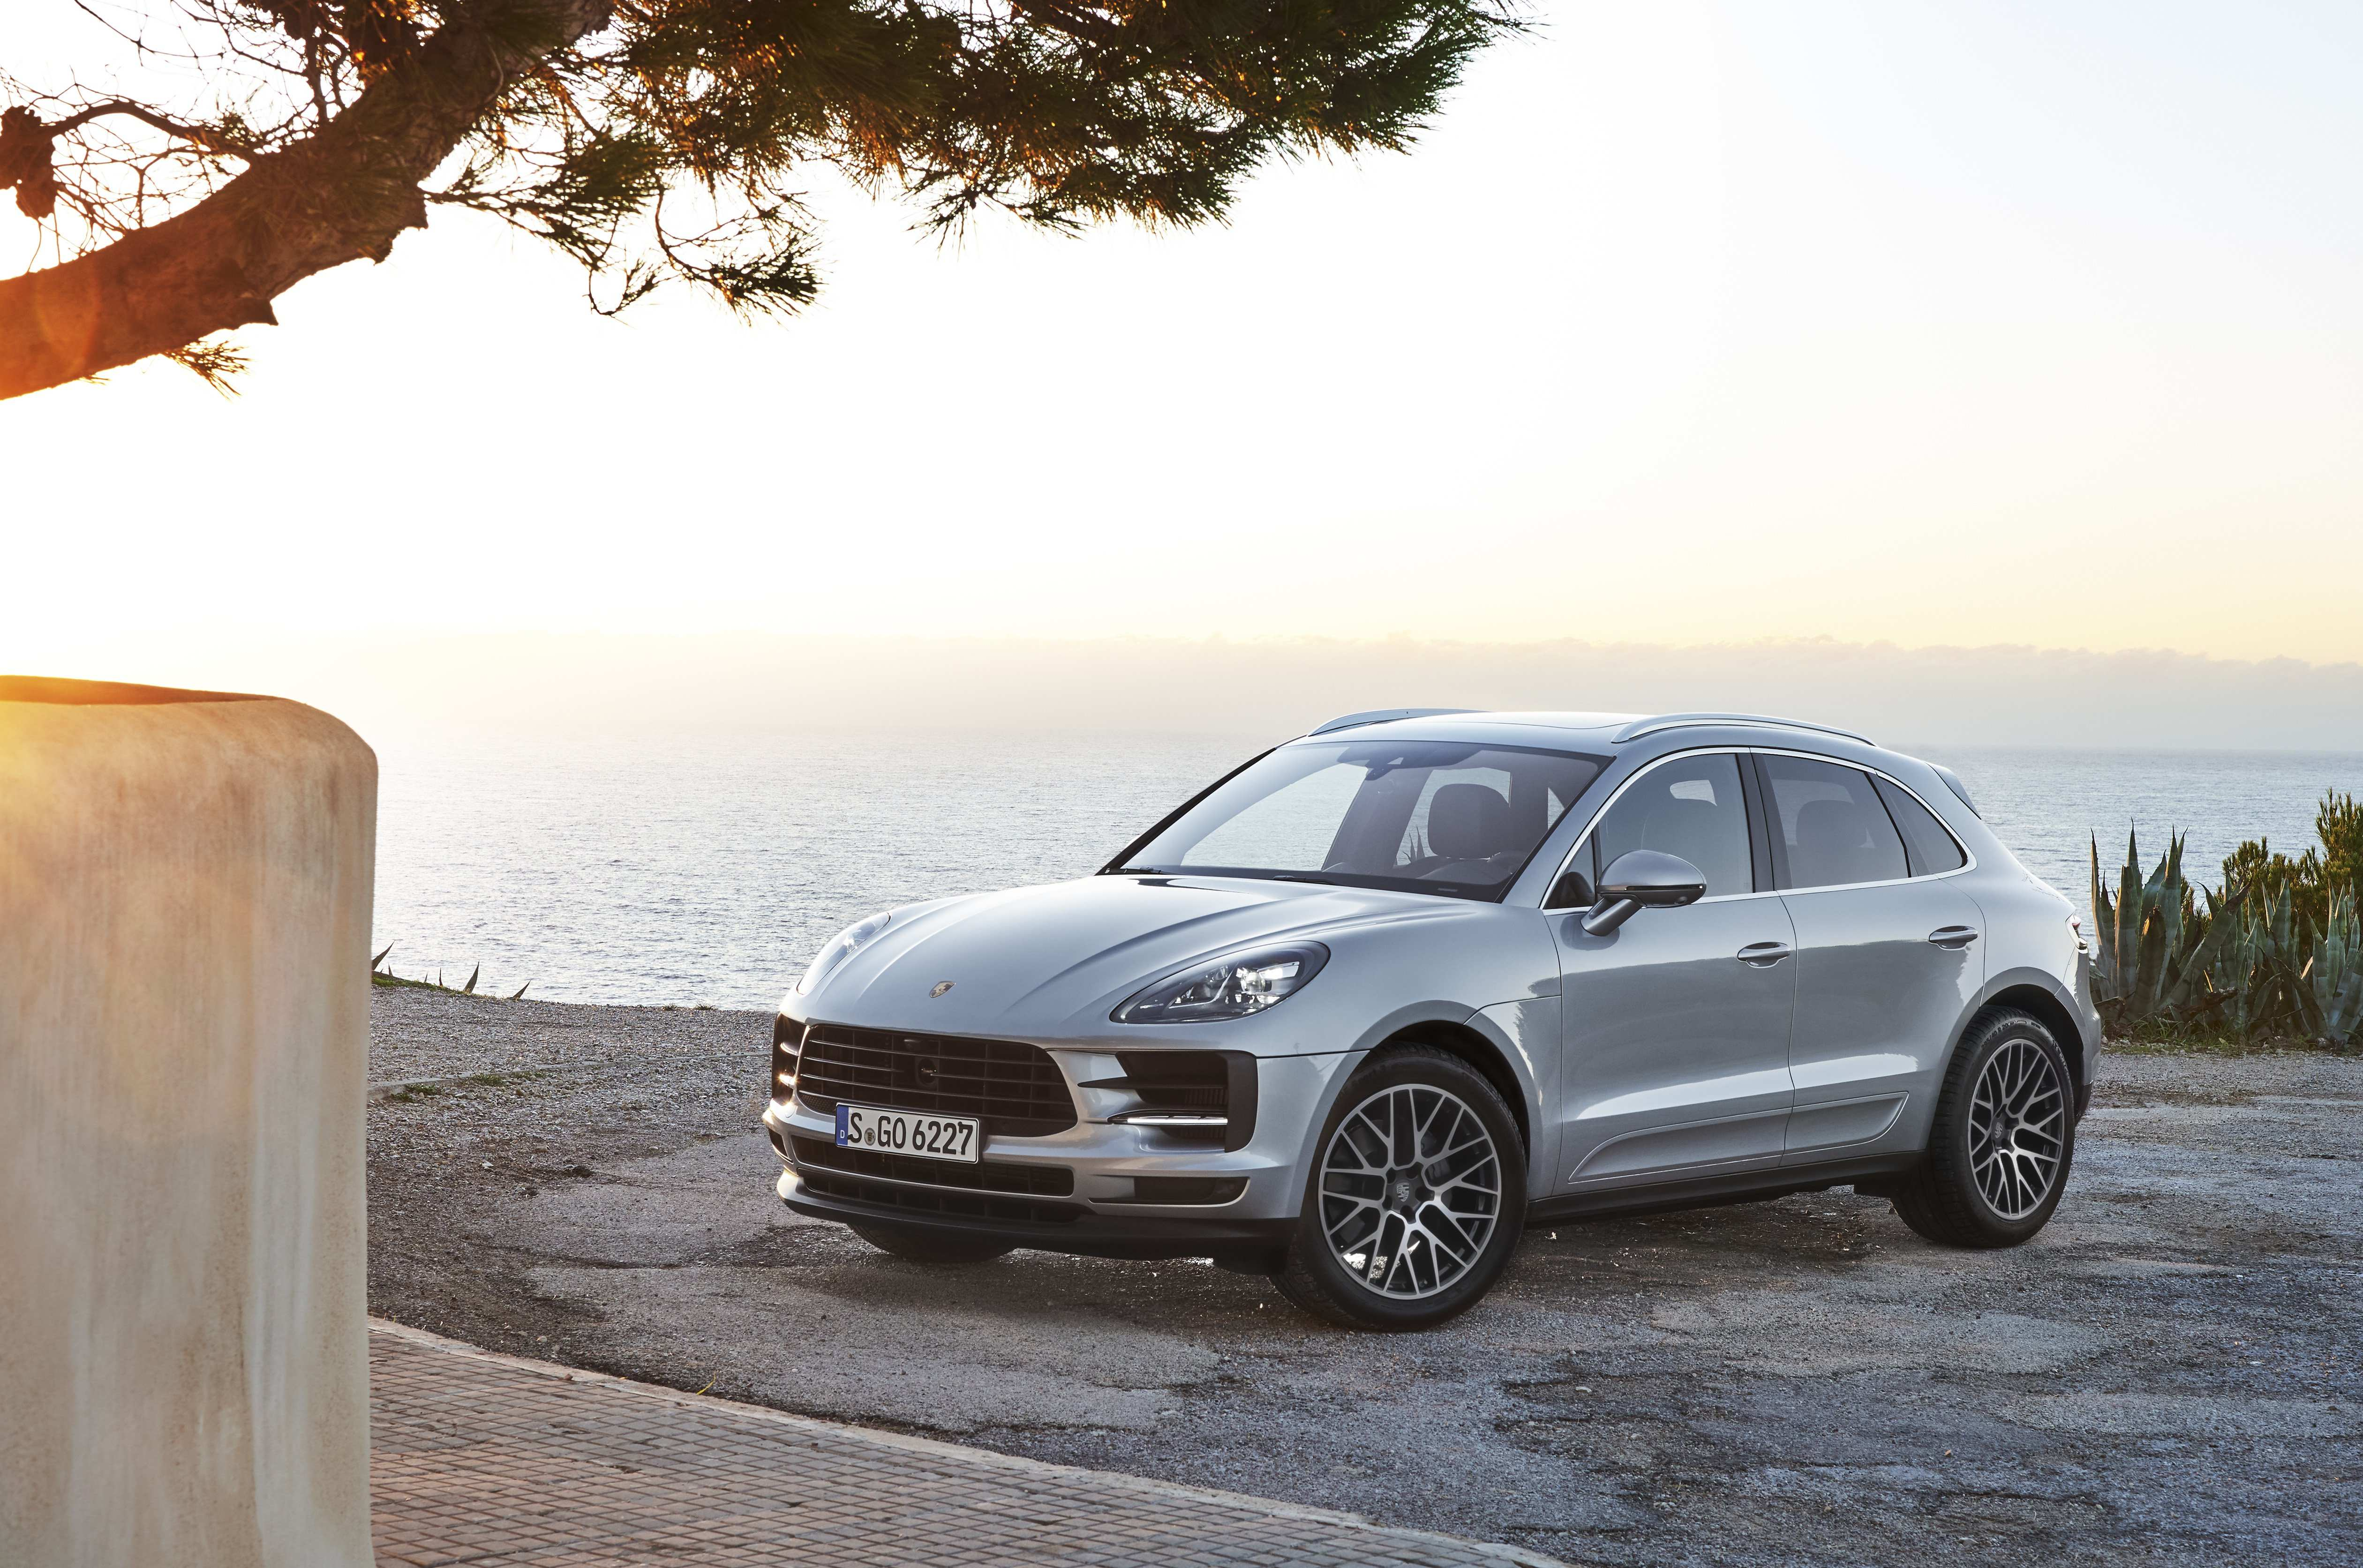 82 The 2020 Porsche Macan Price and Review with 2020 Porsche Macan